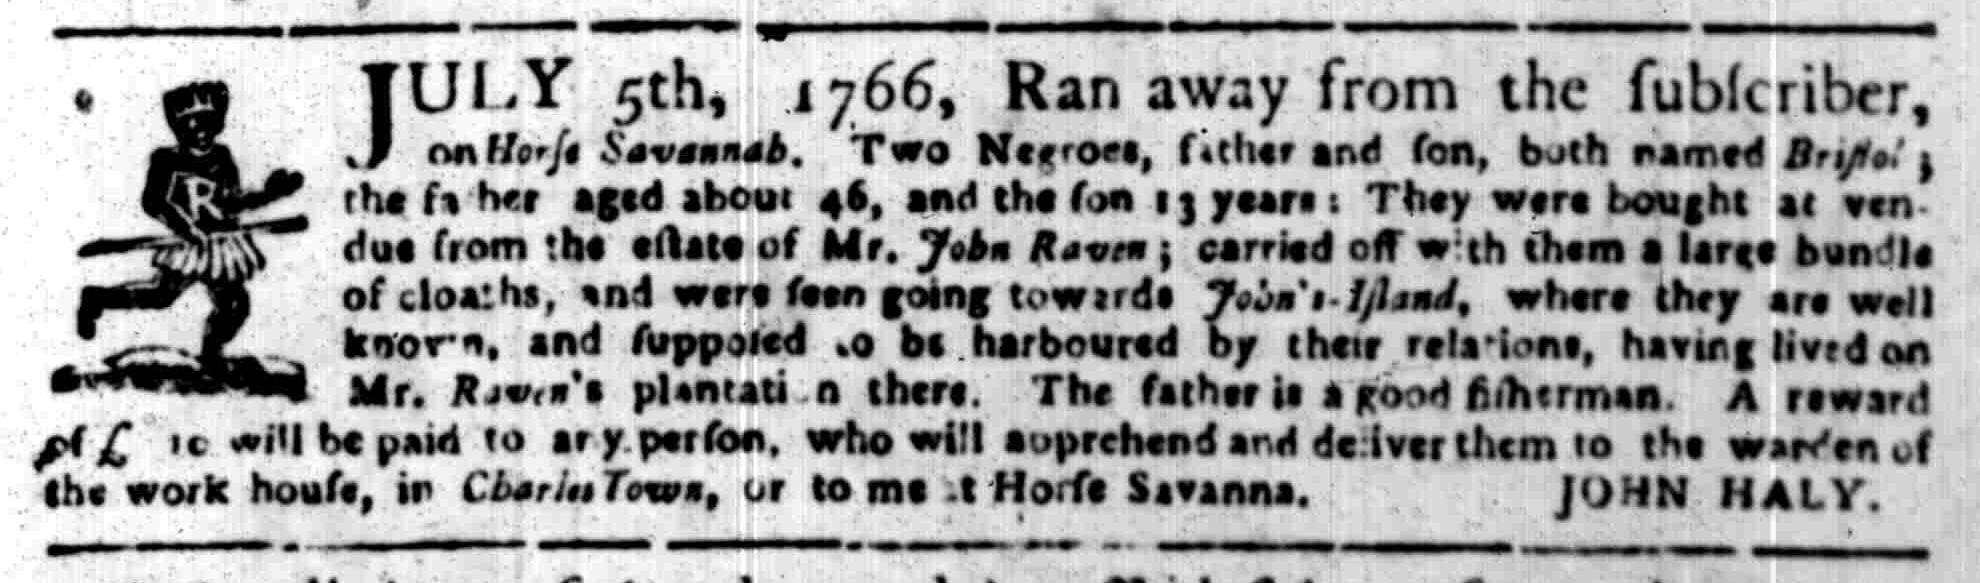 feb-24-south-carolina-gazette-slavery-4